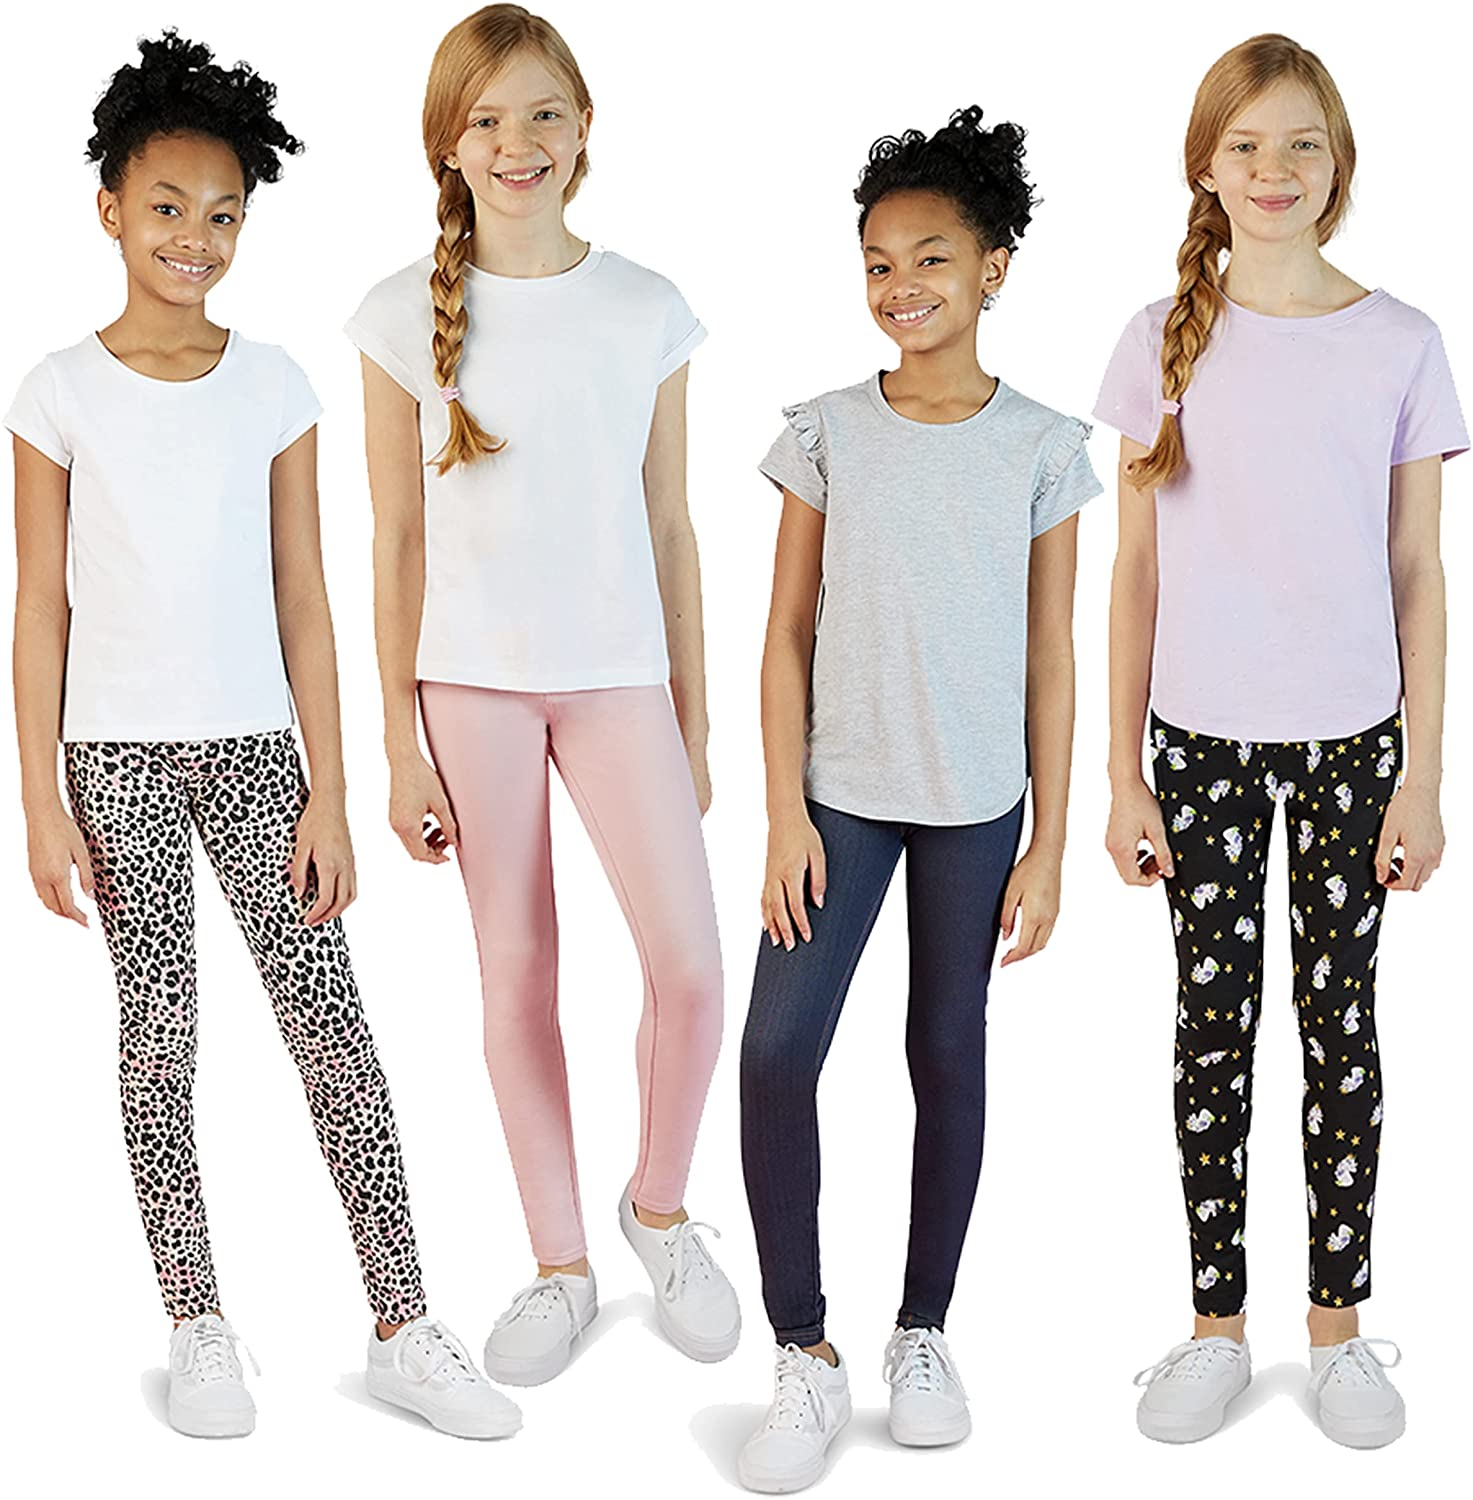 VIGOSS 4 Pack Leggings for Girls Soft Fort Worth Mall Styli unisex and Stretch Cotton